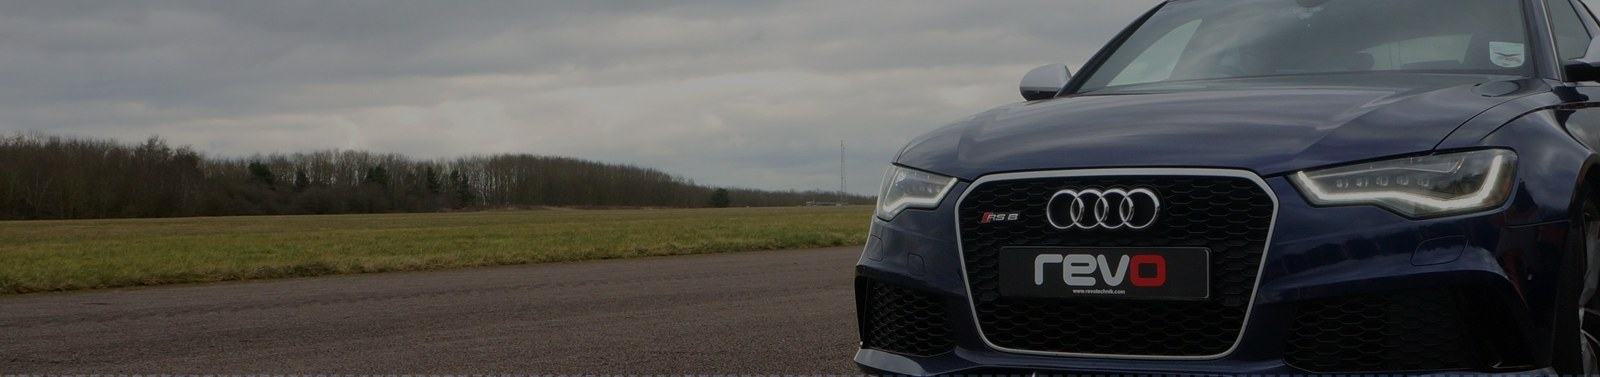 22_Audi-RS6-release-banner